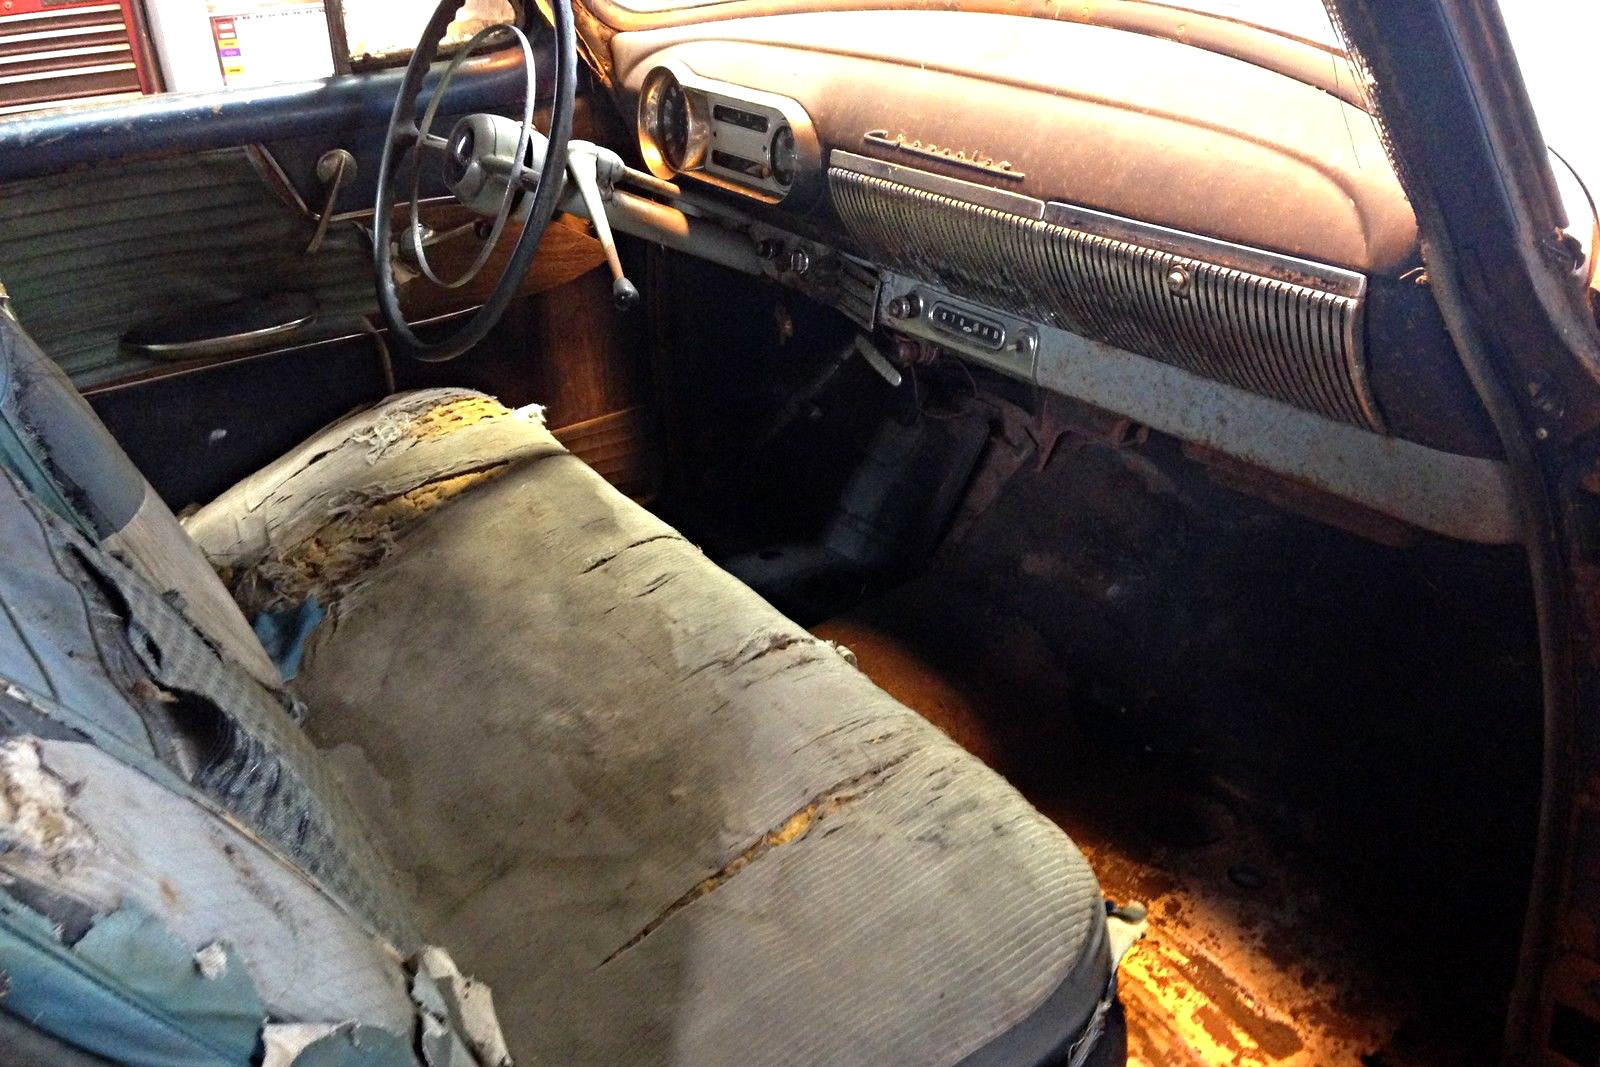 Solid Potential 1954 Chevrolet Bel Air 4 Door Inside There Is A Worn Bench Seat And Some Beat Up Panels The Dash Wears Nice Patina Trim All Accounted For